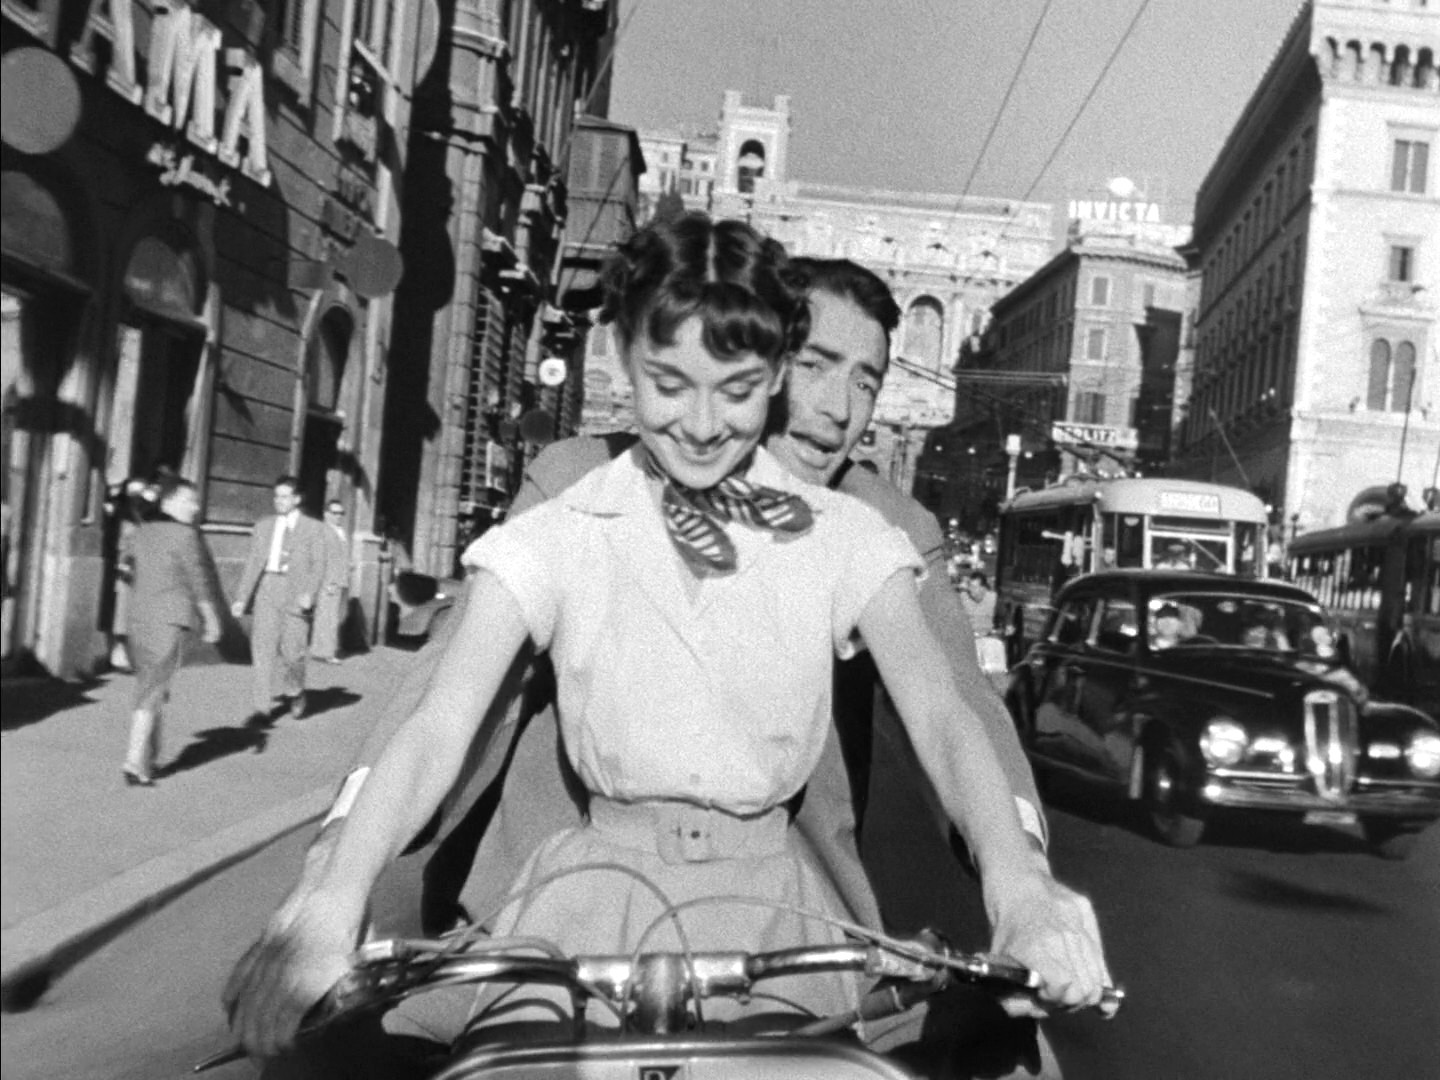 Audrey Hepburn and Gregory Peck on Vespa in Roman Holiday trailer.jpg